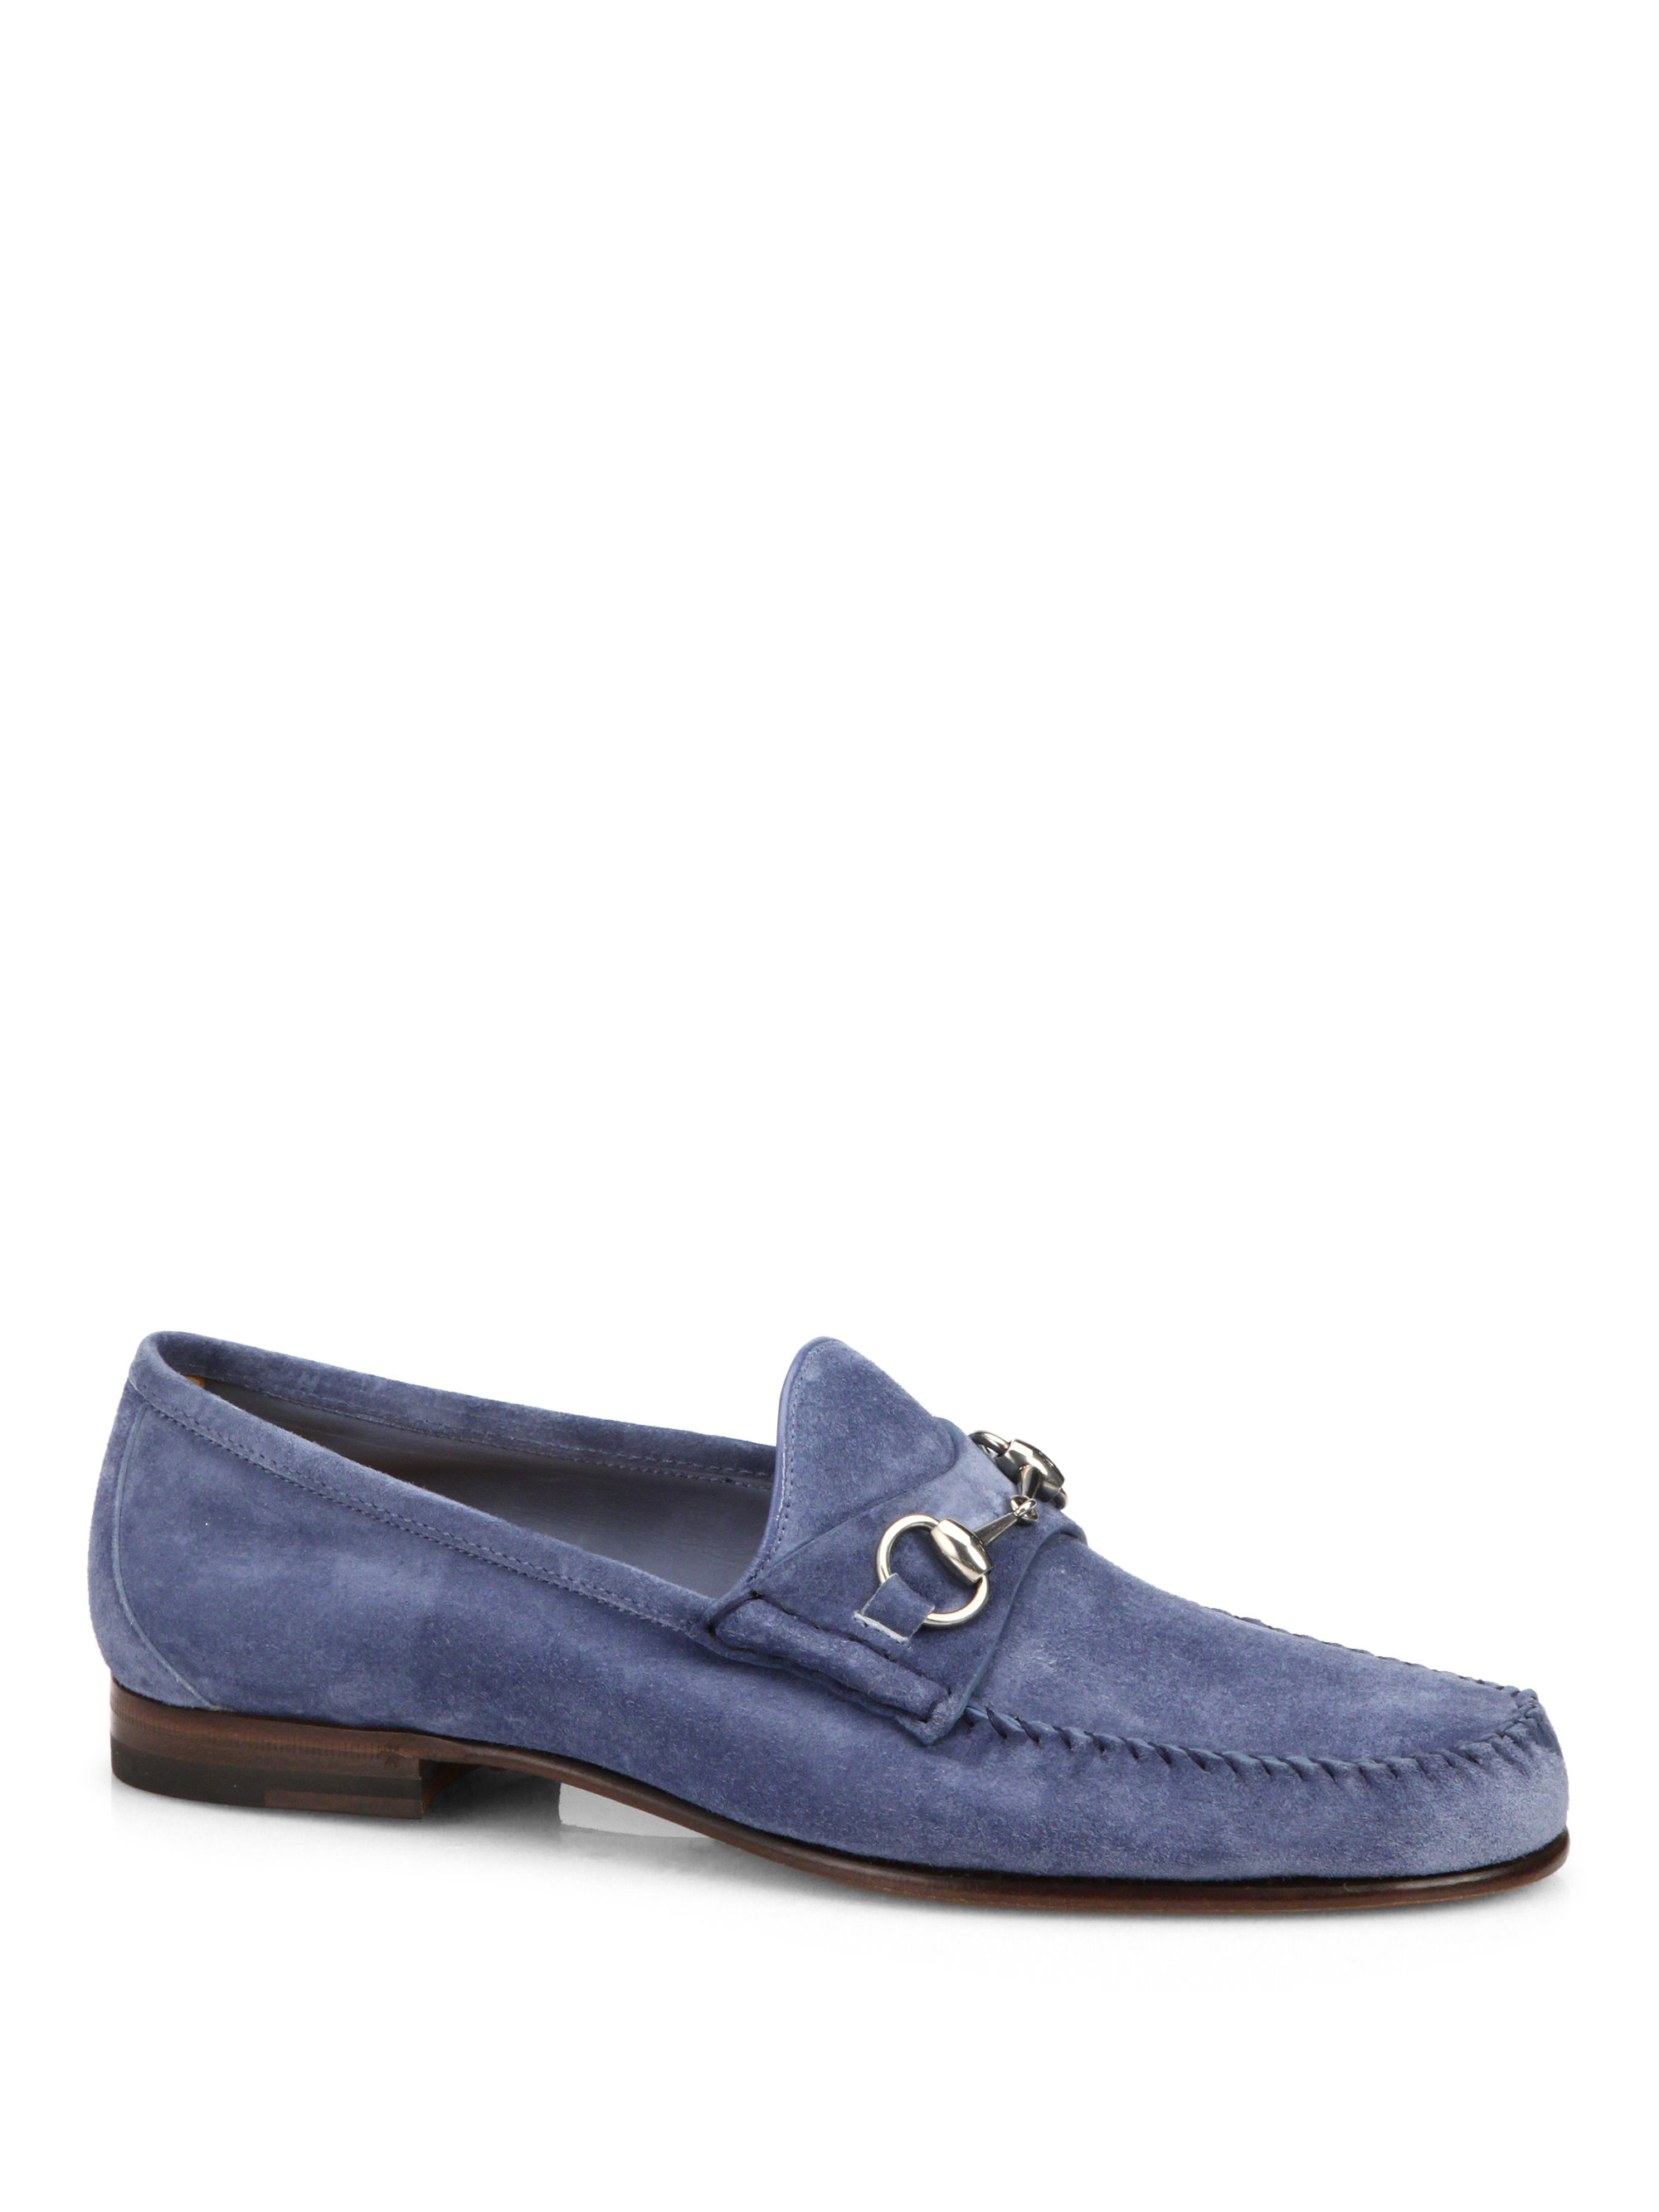 Free shipping BOTH ways on Loafers, Blue, Men, from our vast selection of styles. Fast delivery, and 24/7/ real-person service with a smile. Click or call